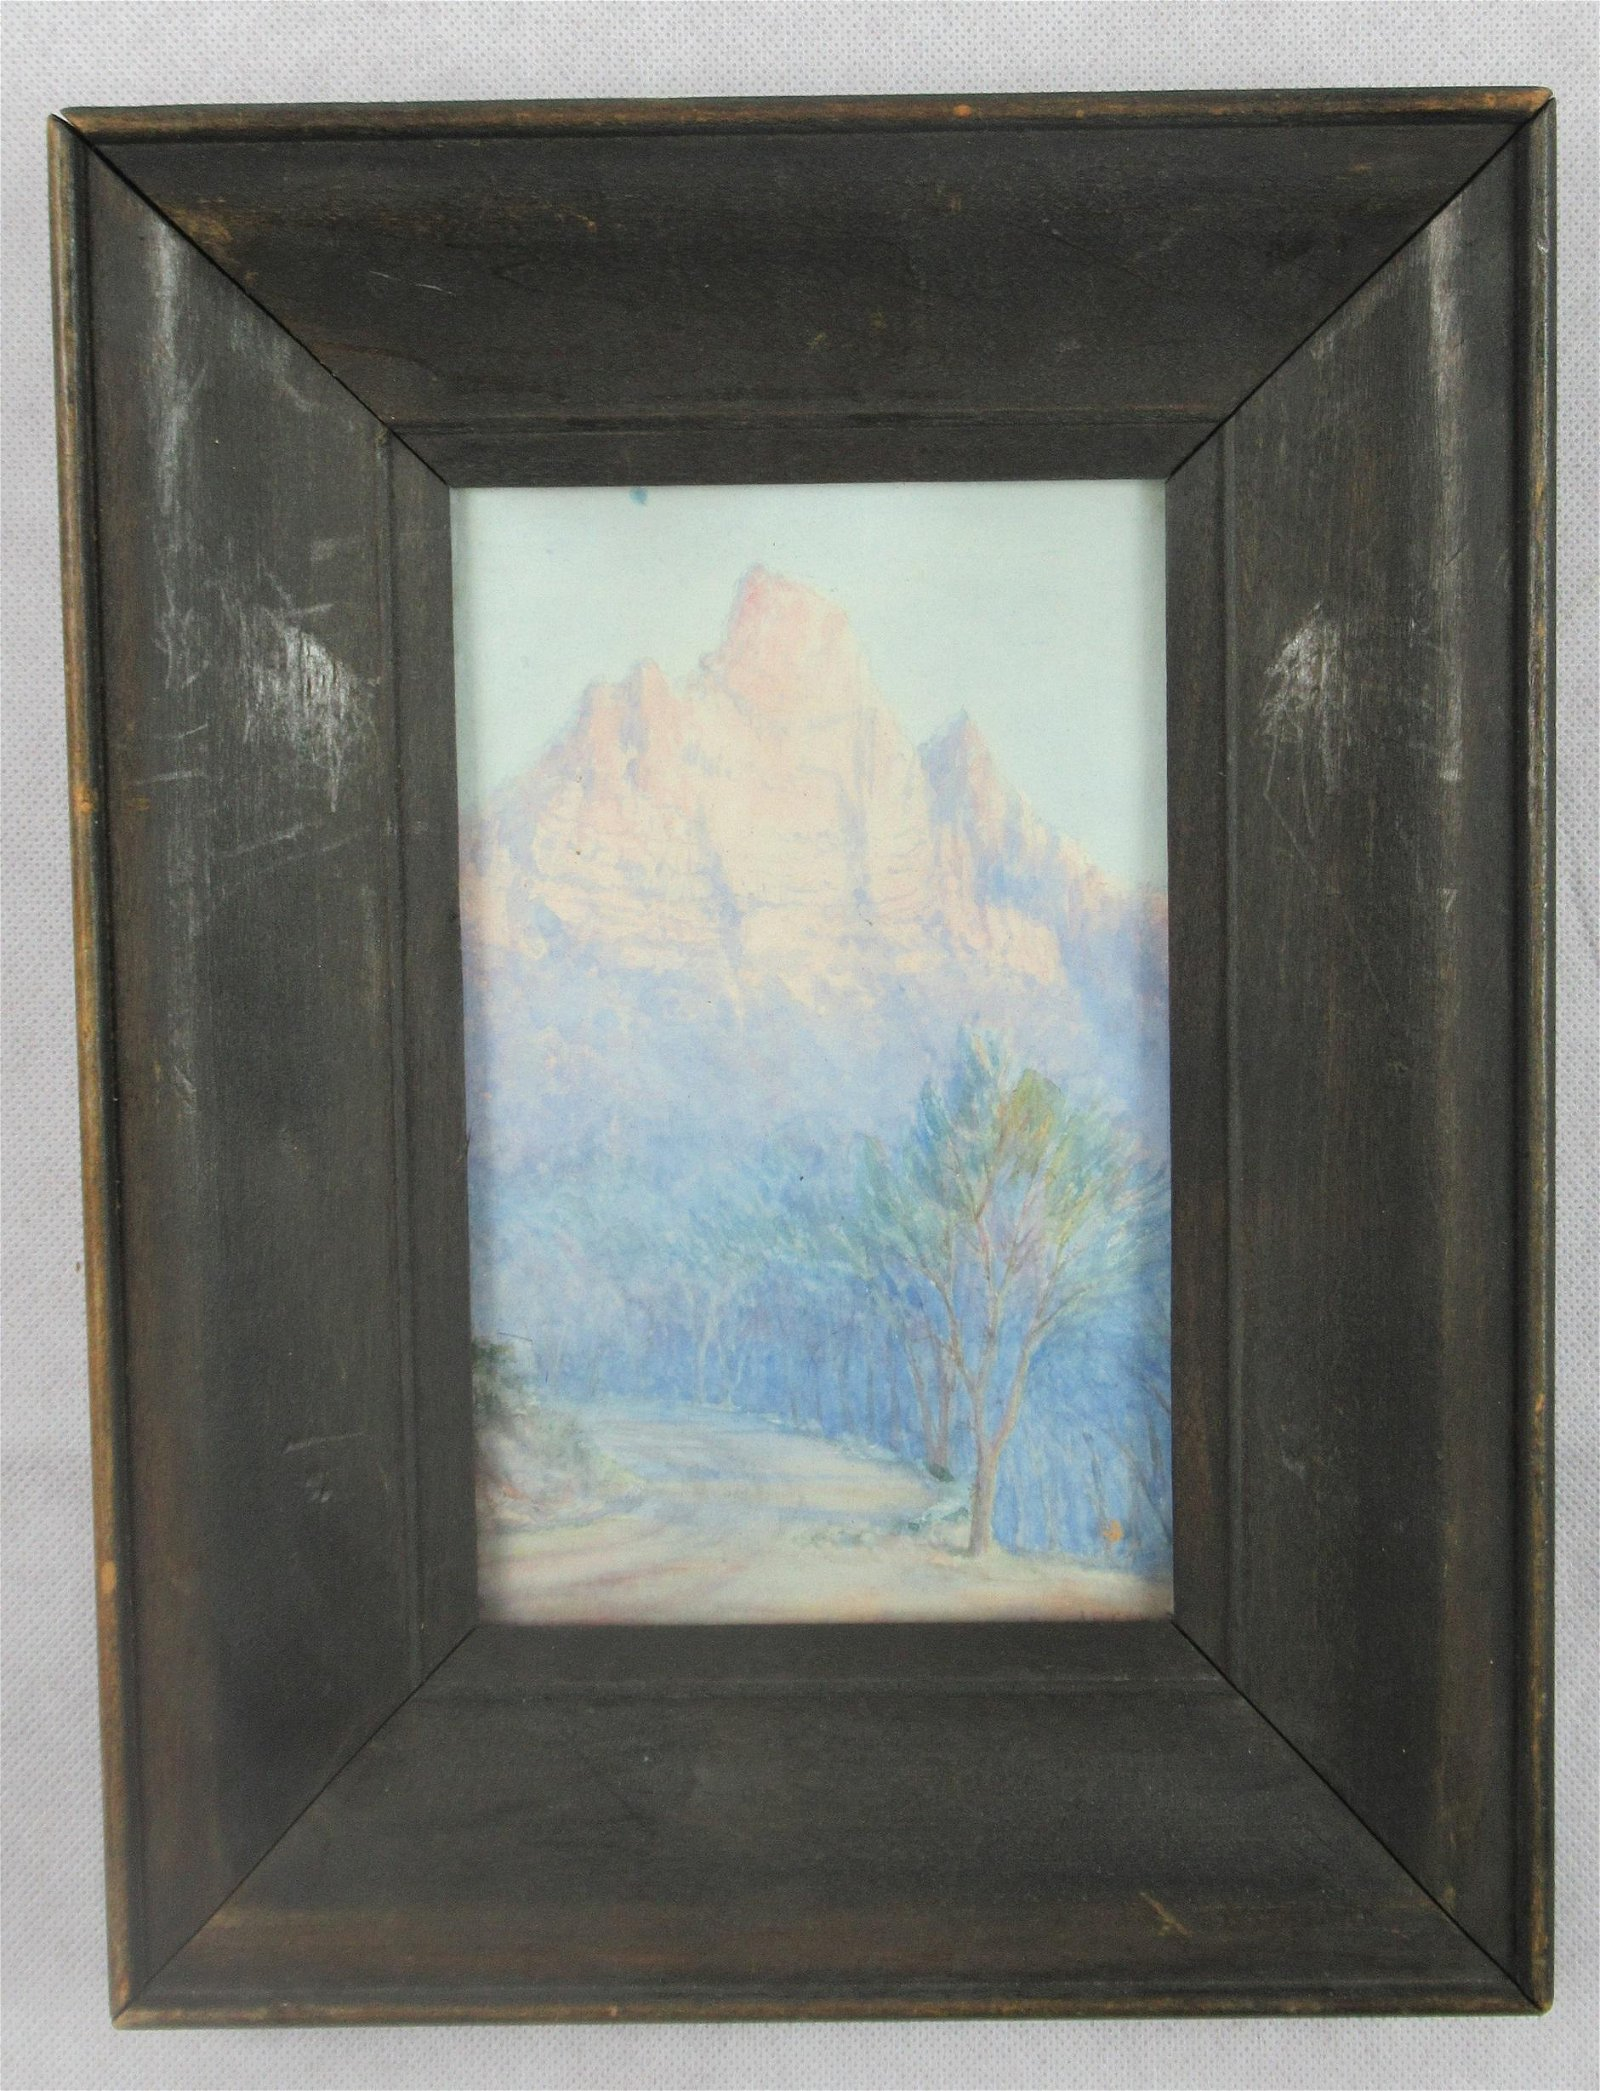 A.E. Capell oil painting